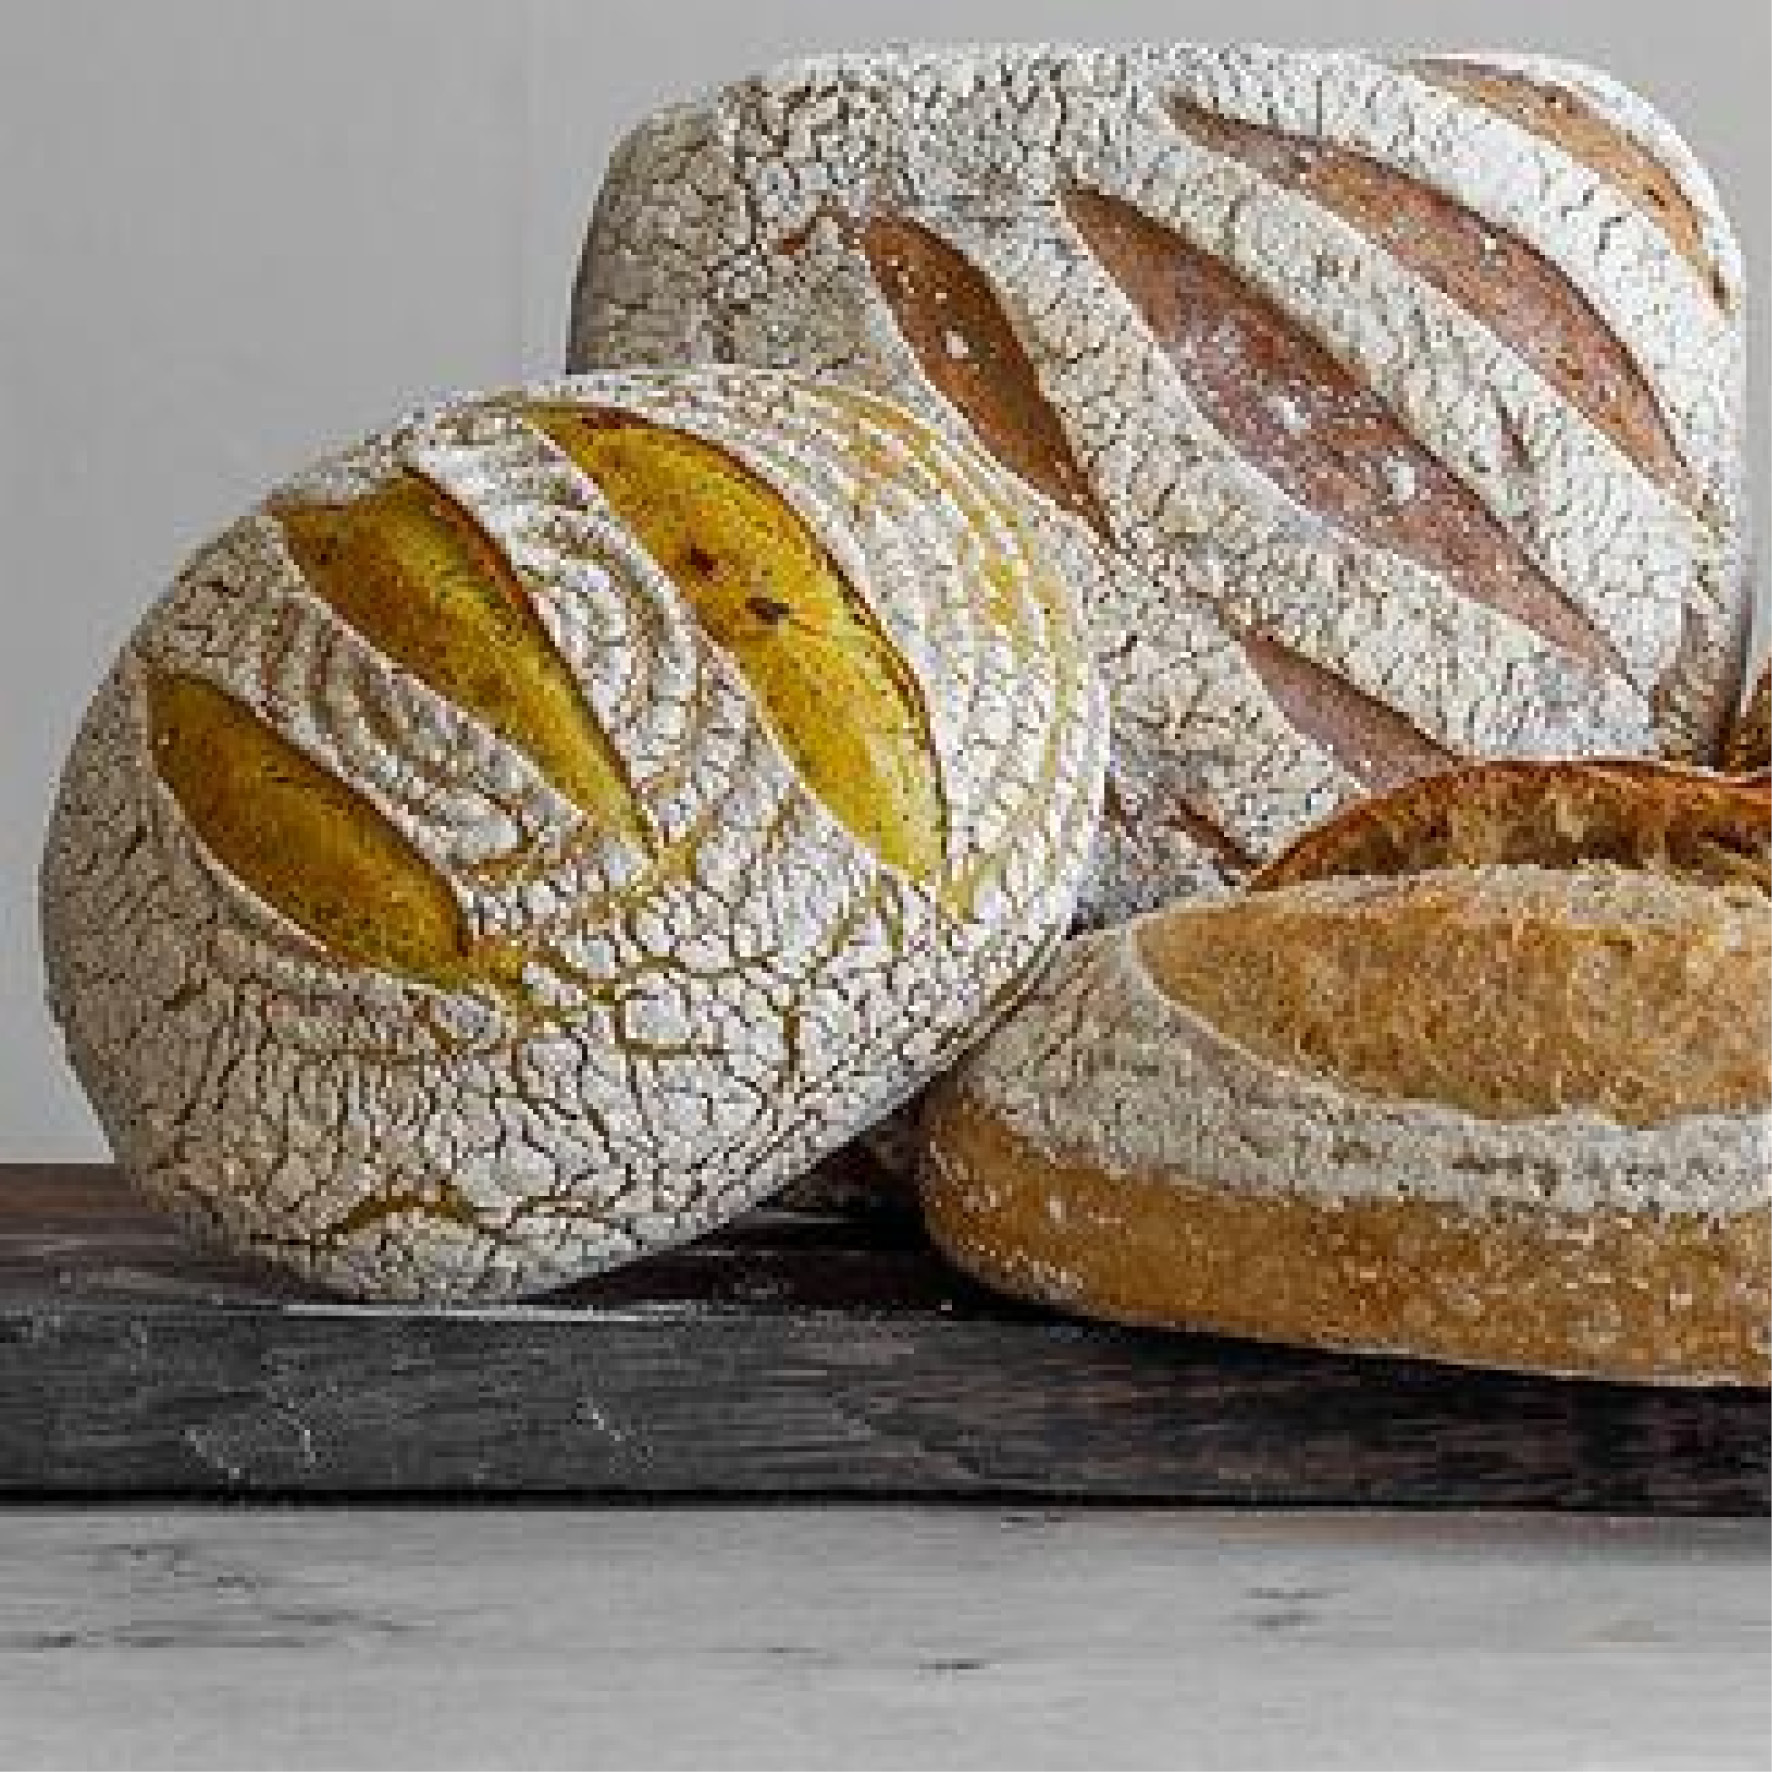 All of our bread comes from  Hobbs House bakery  The Organic Turmeric Sourdough is amazing! A handcrafted loaf, fermented for 14 hours! And we also have the award winning Gluten free loaf!